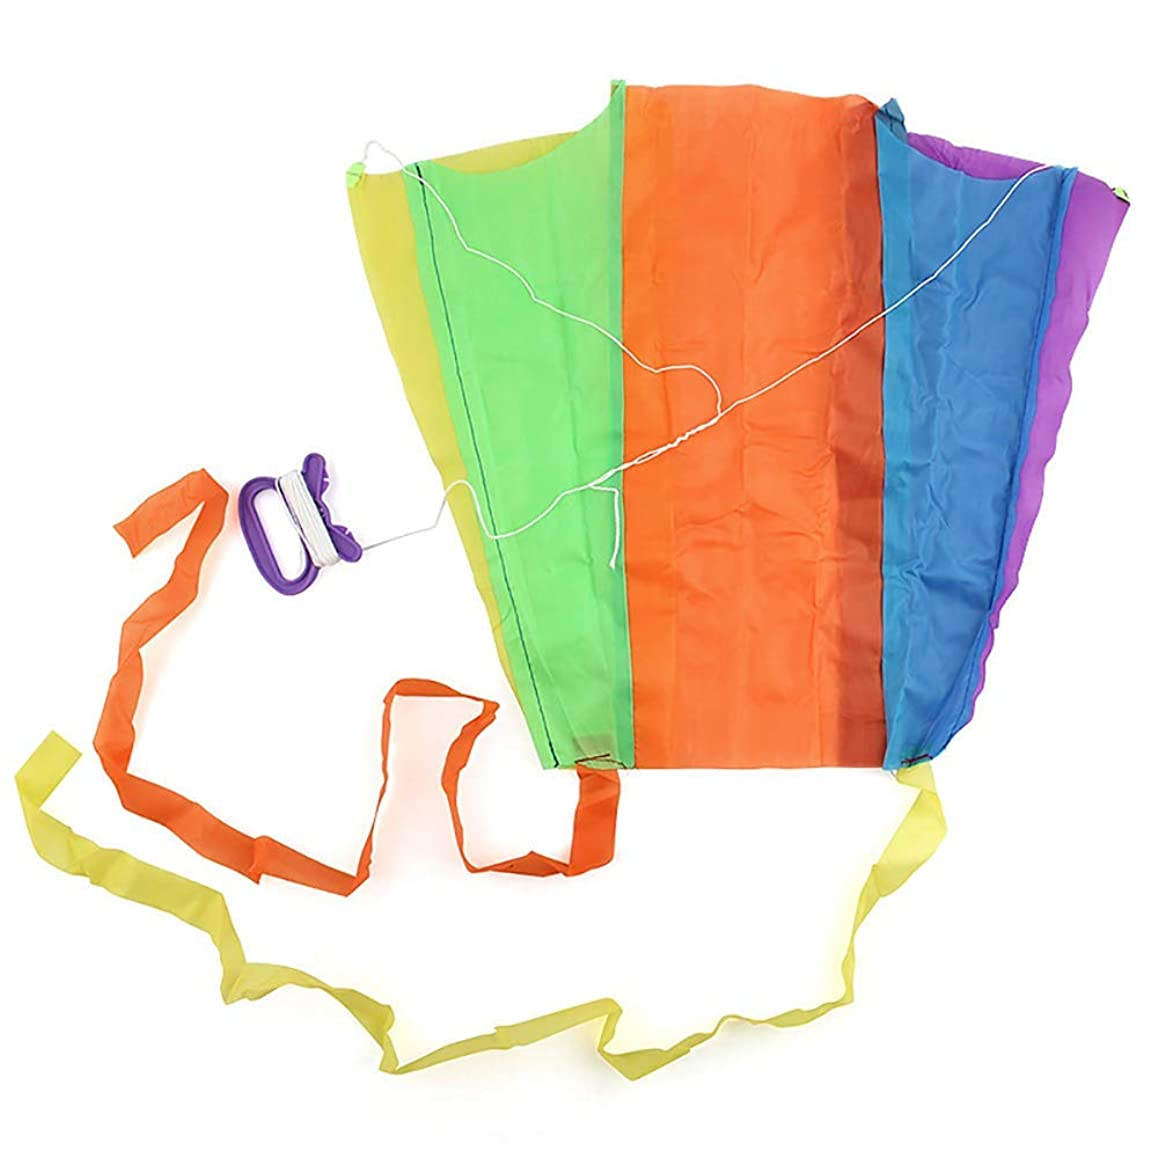 Tcplyn Premium Quality 1pc Portable Children's Colorful Mini Pocket Kite Outdoor Fun Sports Software Kite Flying Gift for Kids